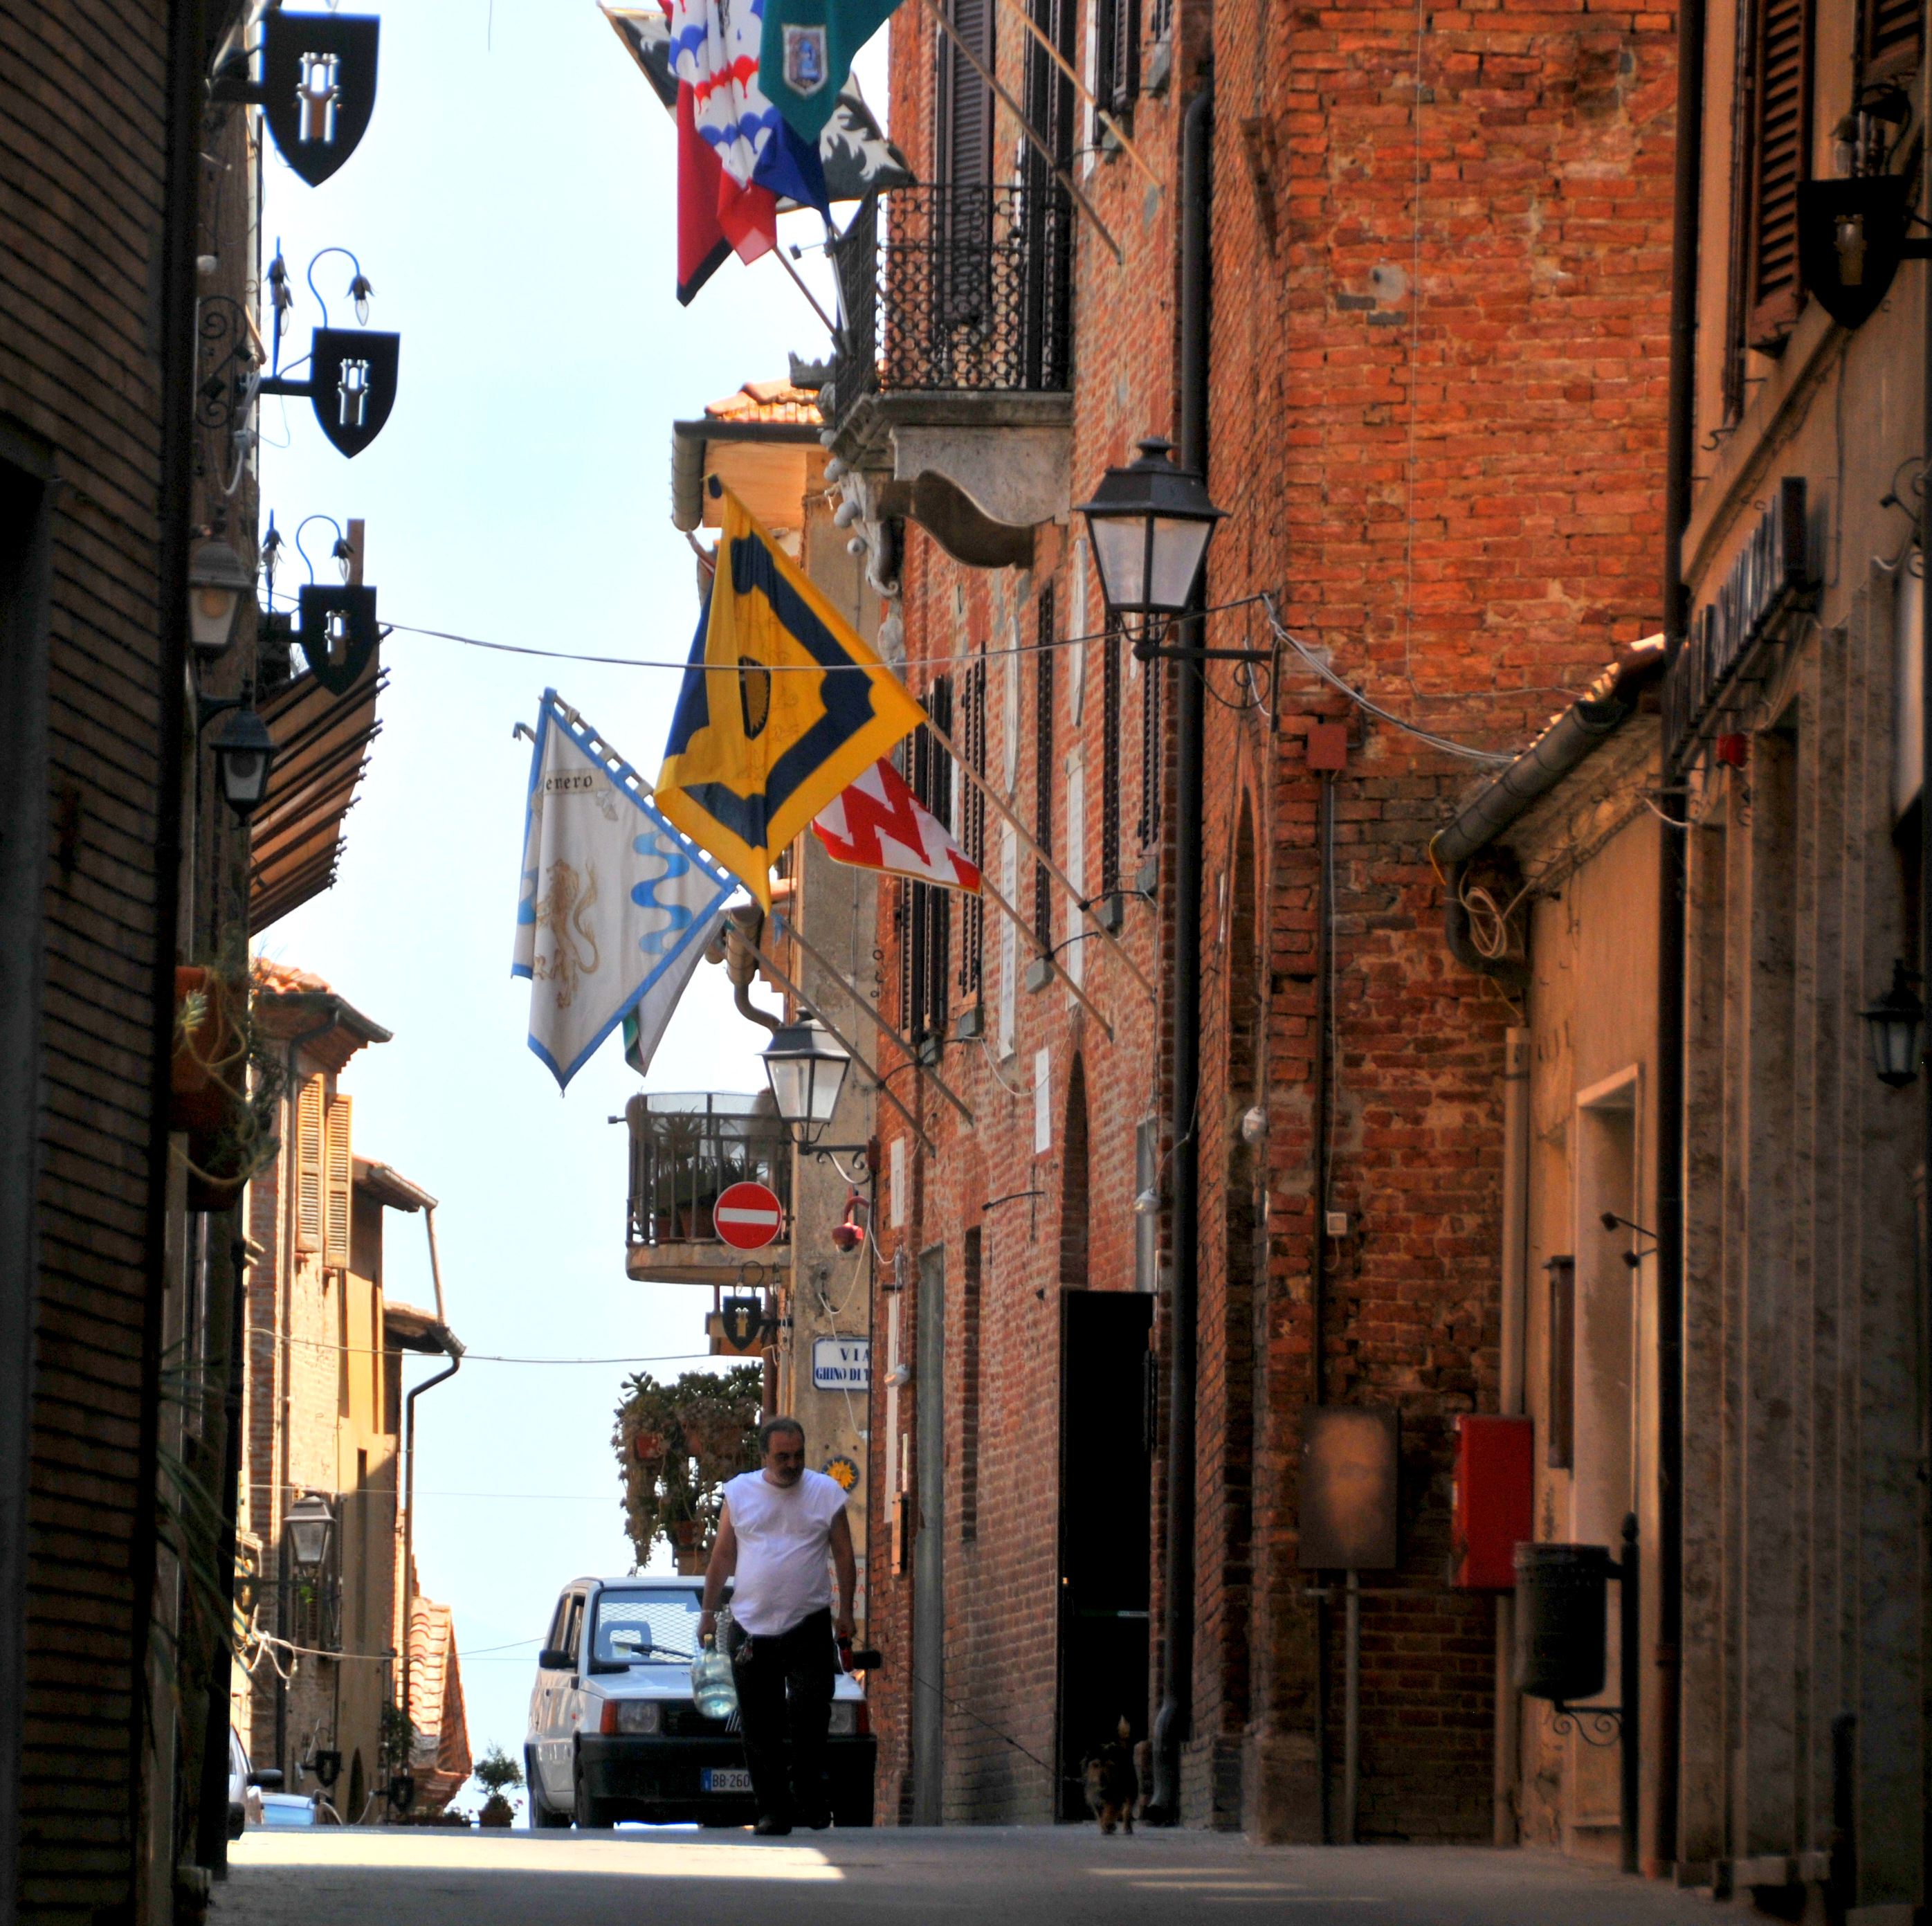 Image showing a red brick Tuscan hill town showing tall narrow buildings and narrow streets with contrada flags flying from the fronts of buildings